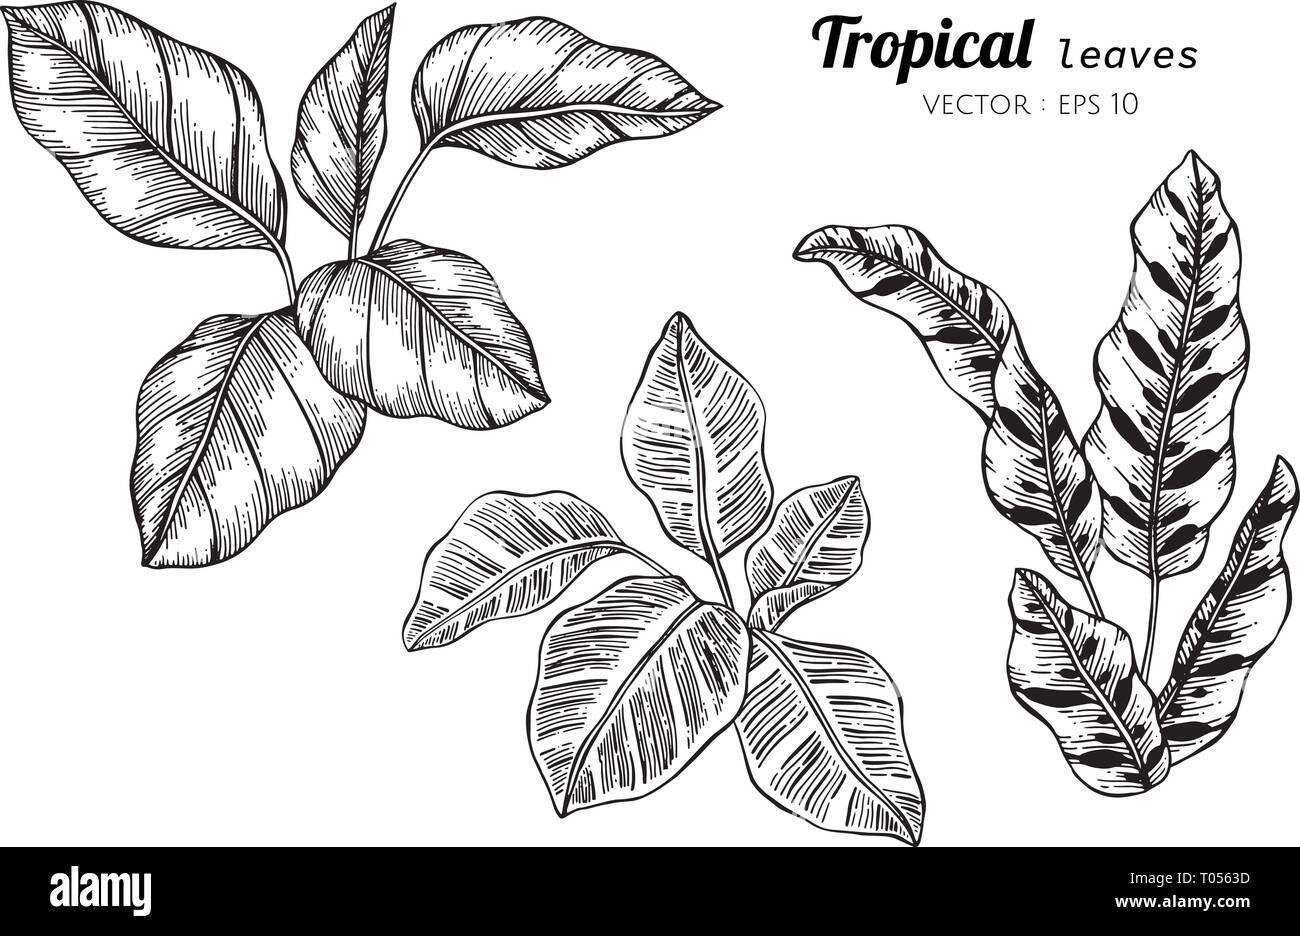 Collection Set Of Tropical Leaves Drawing Illustration For Pattern Logo Template Banner Posters Invitation And Greeting Card Design Stock Vector Image Art Alamy This high energy tropical flower painting, titled tropicana will jazz up any decor. https www alamy com collection set of tropical leaves drawing illustration for pattern logo template banner posters invitation and greeting card design image241059713 html